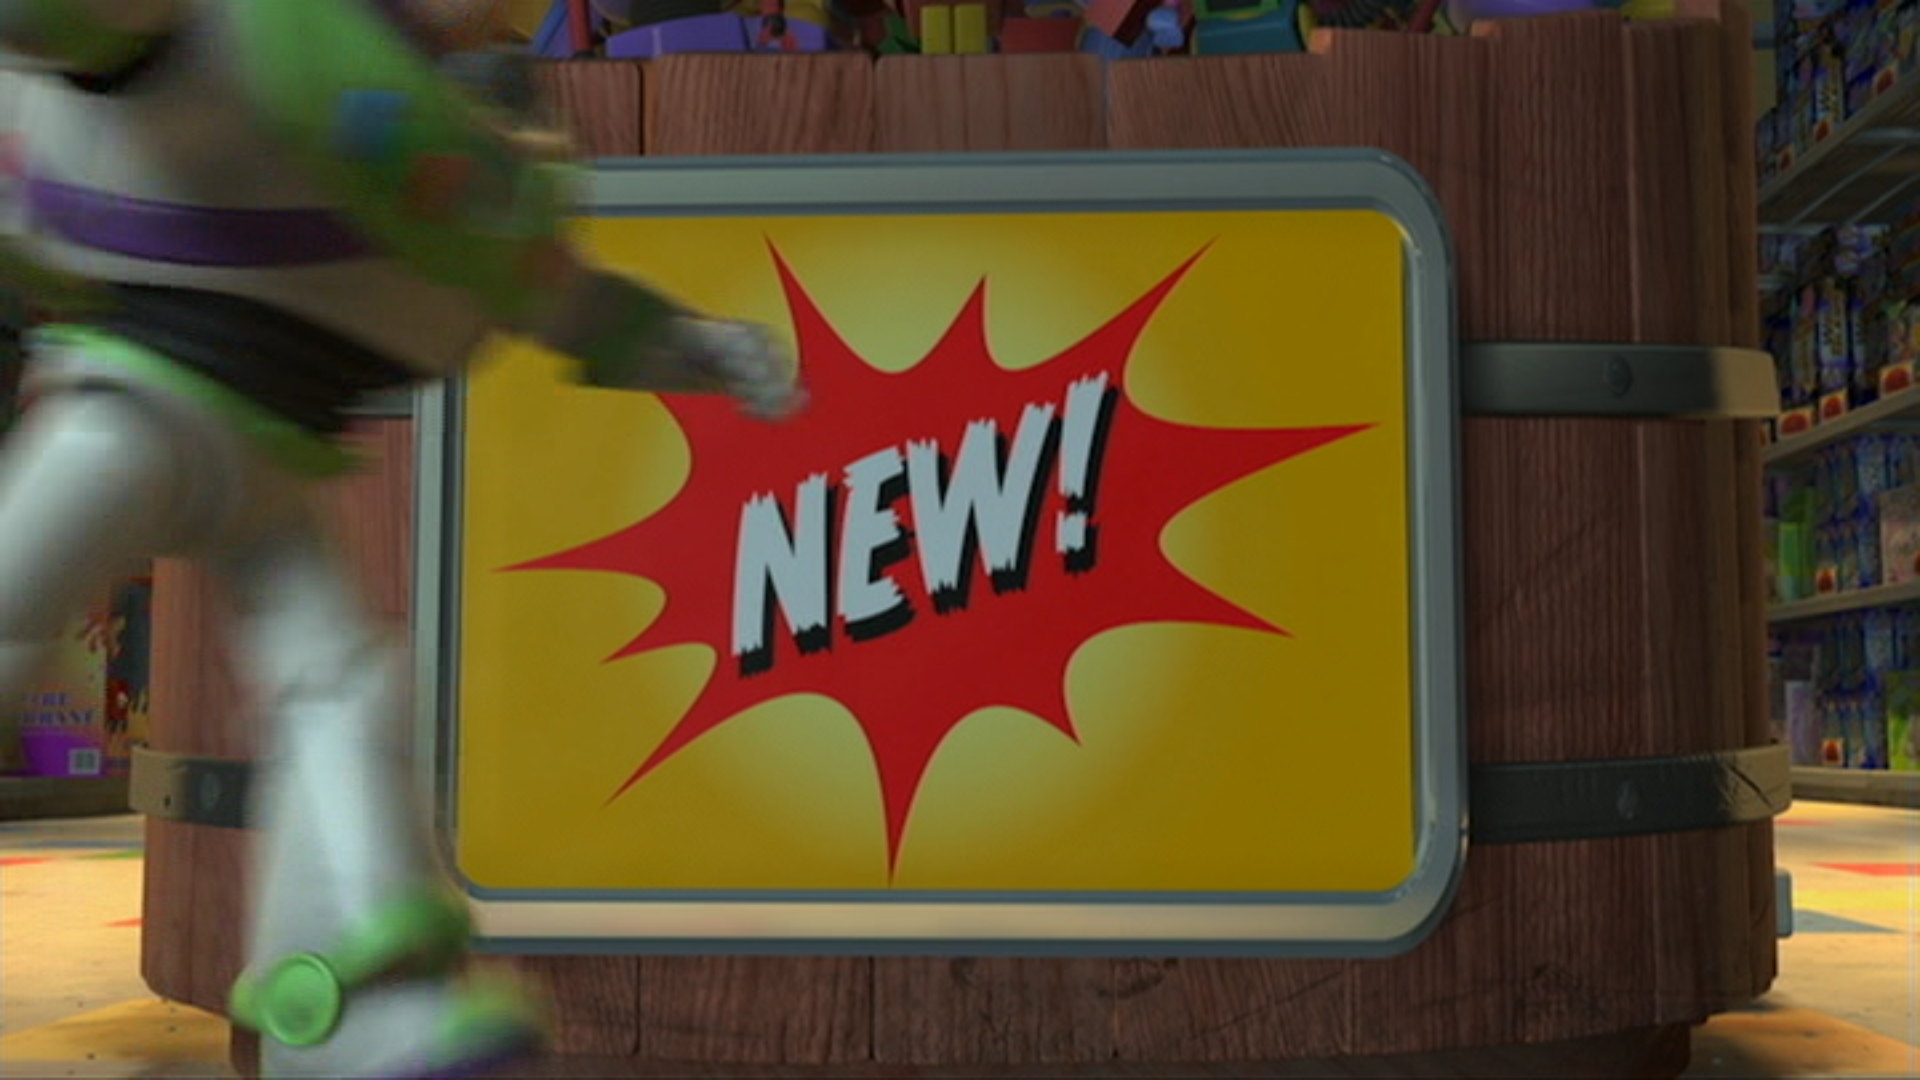 Al S Toy Barn In Toy Story 2 Fonts In Use